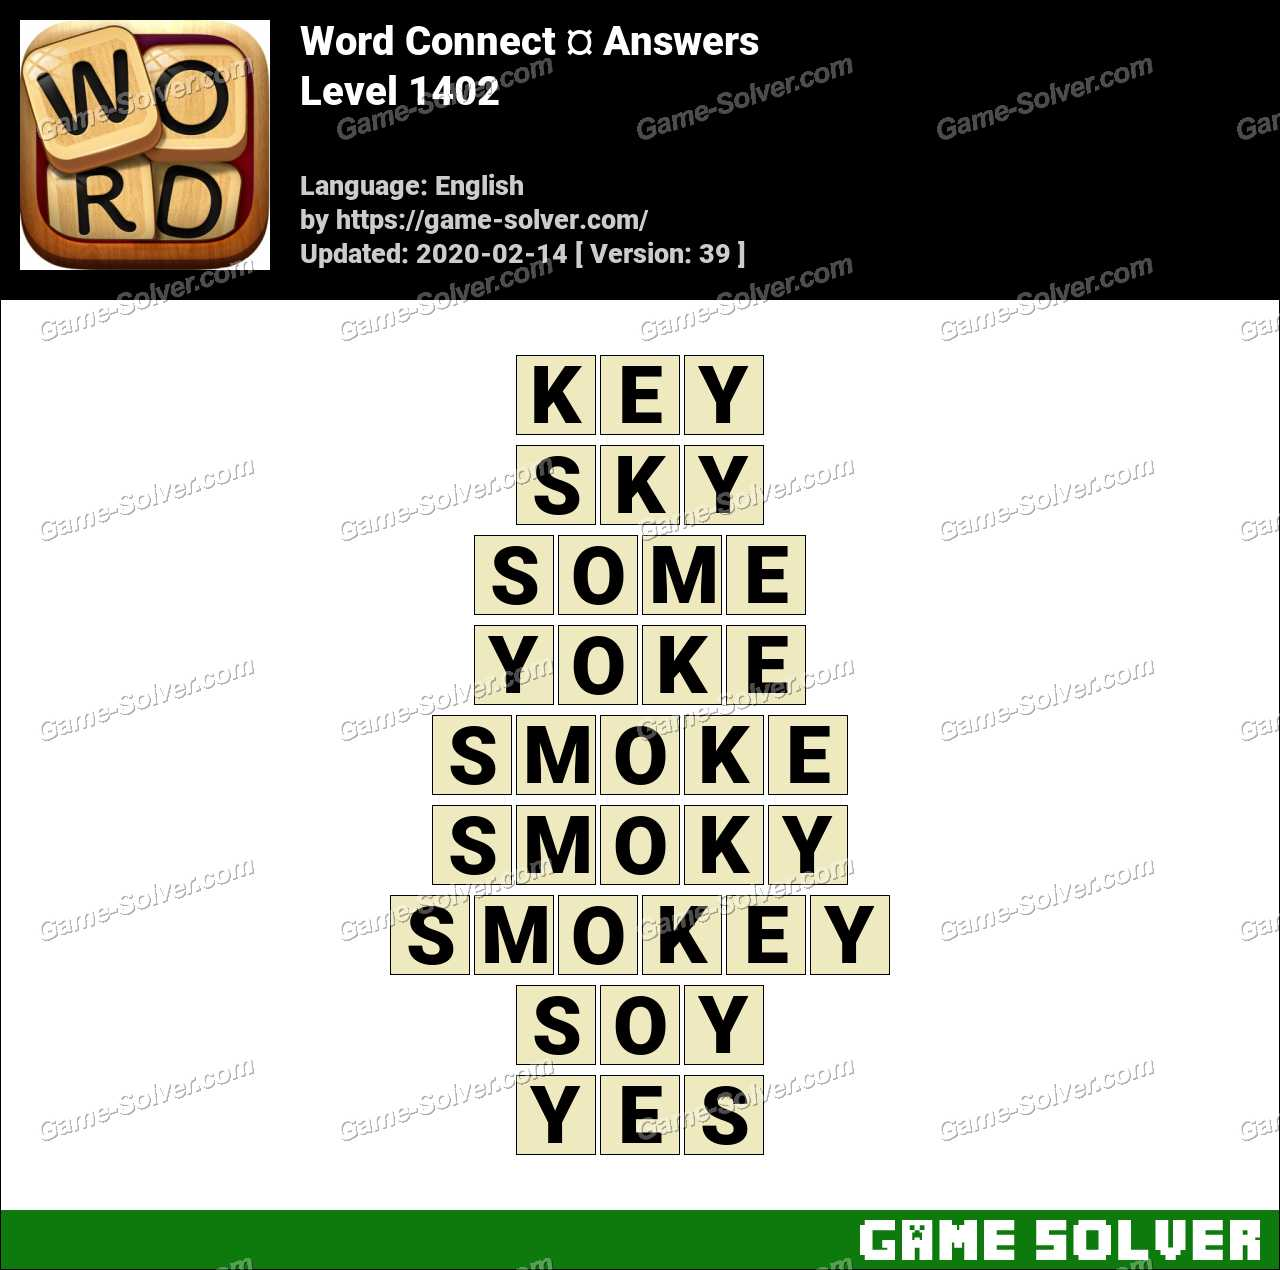 Word Connect Level 1402 Answers